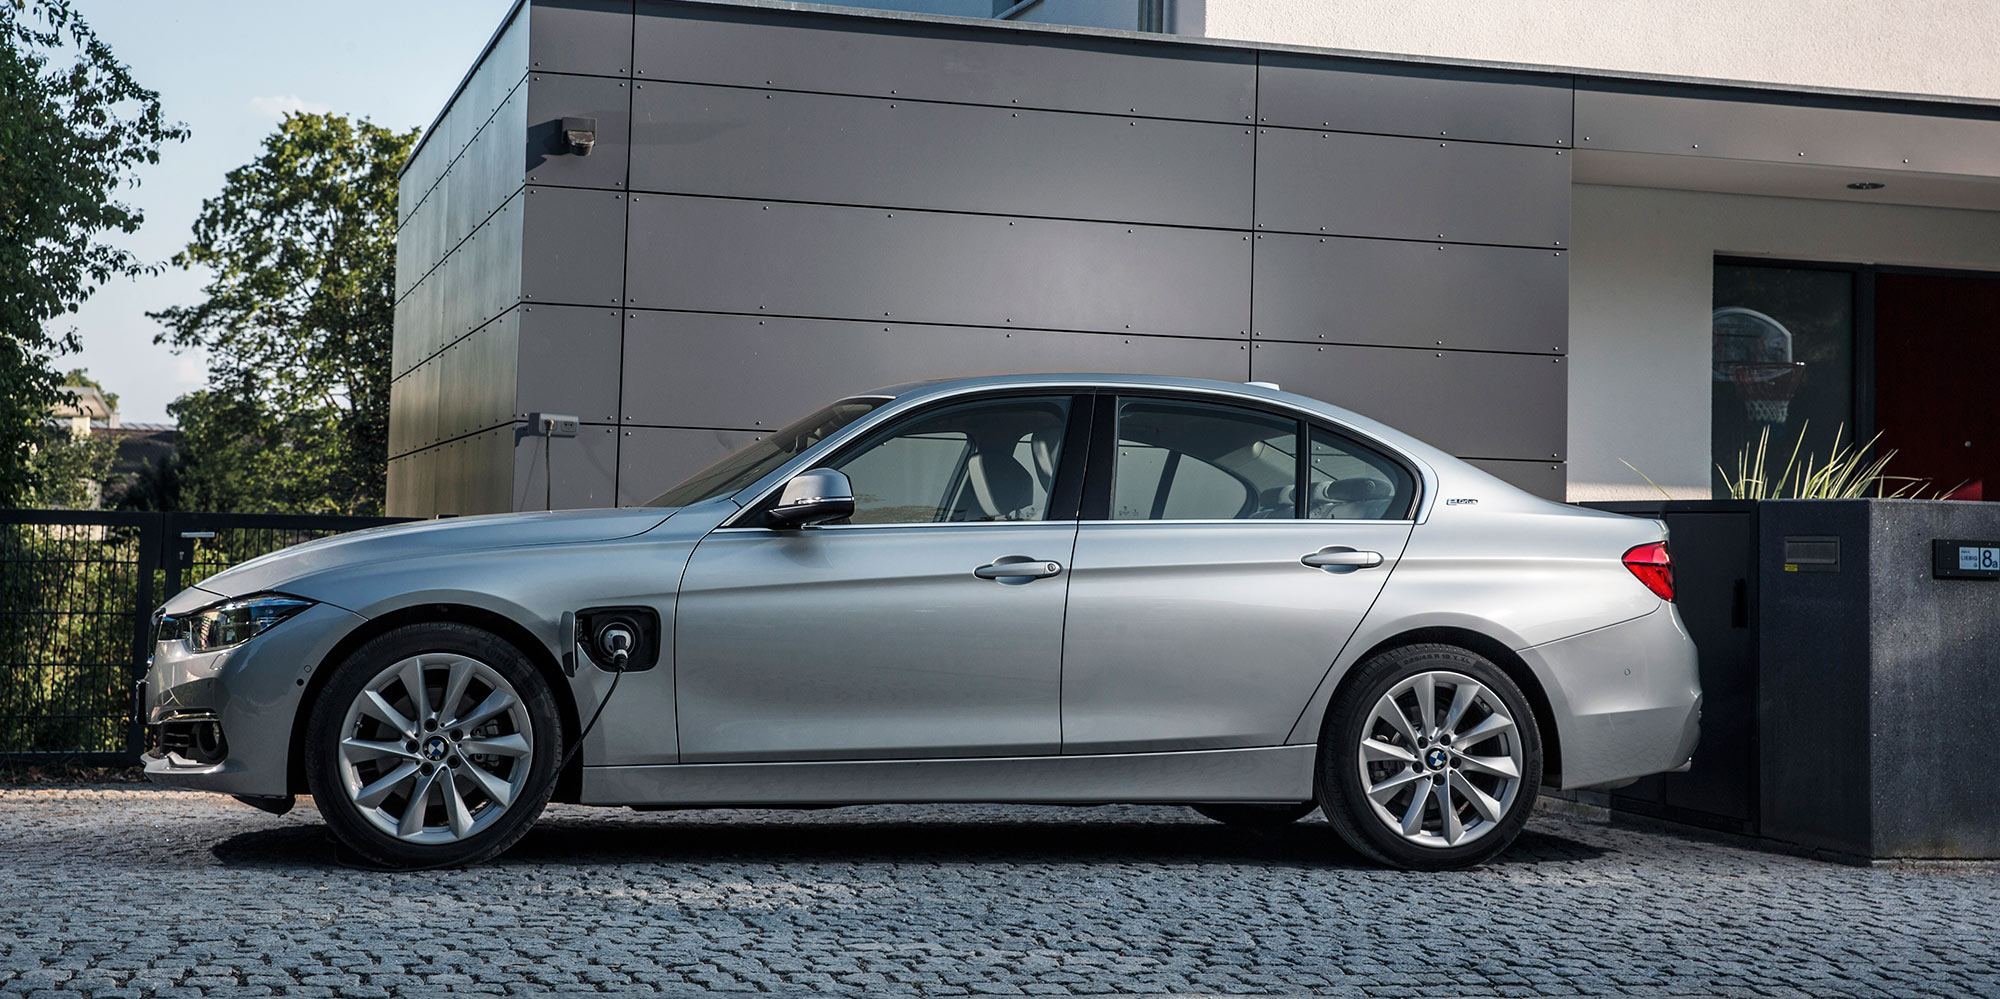 The current plug-in 3-Series but a pure EV is in the works